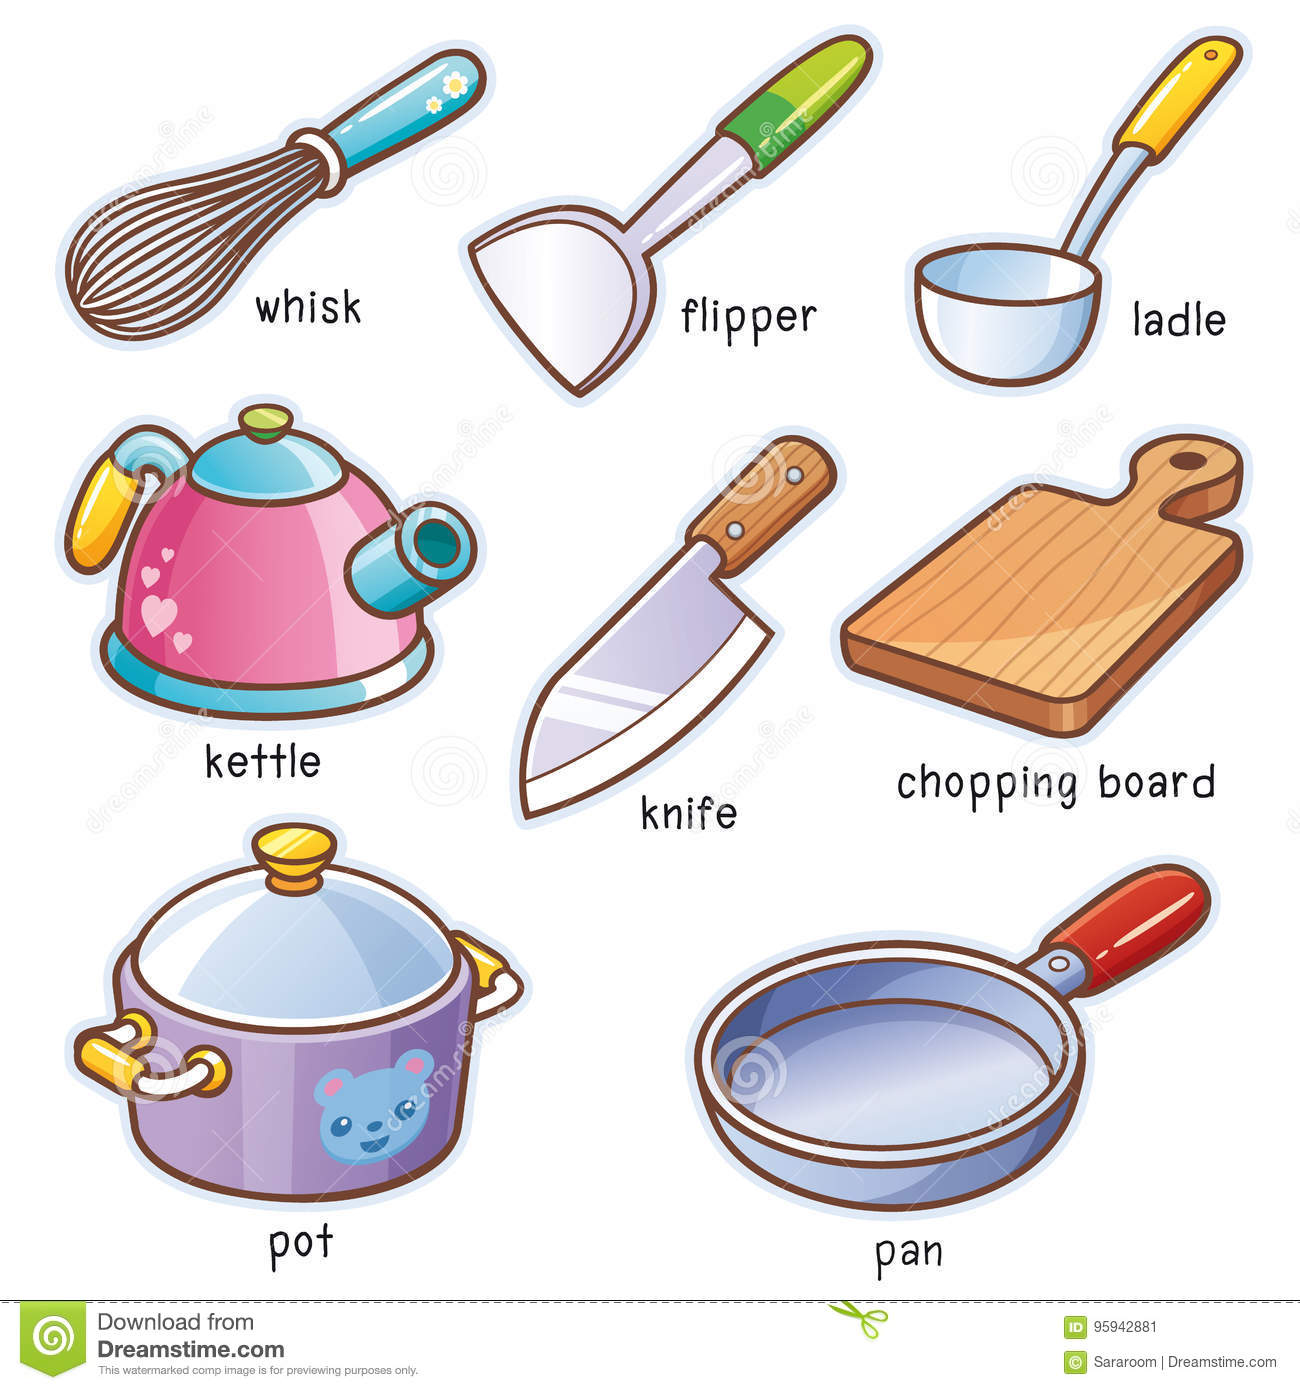 Kitchen cartoons illustrations vector stock images for Kitchen utensils vocabulary